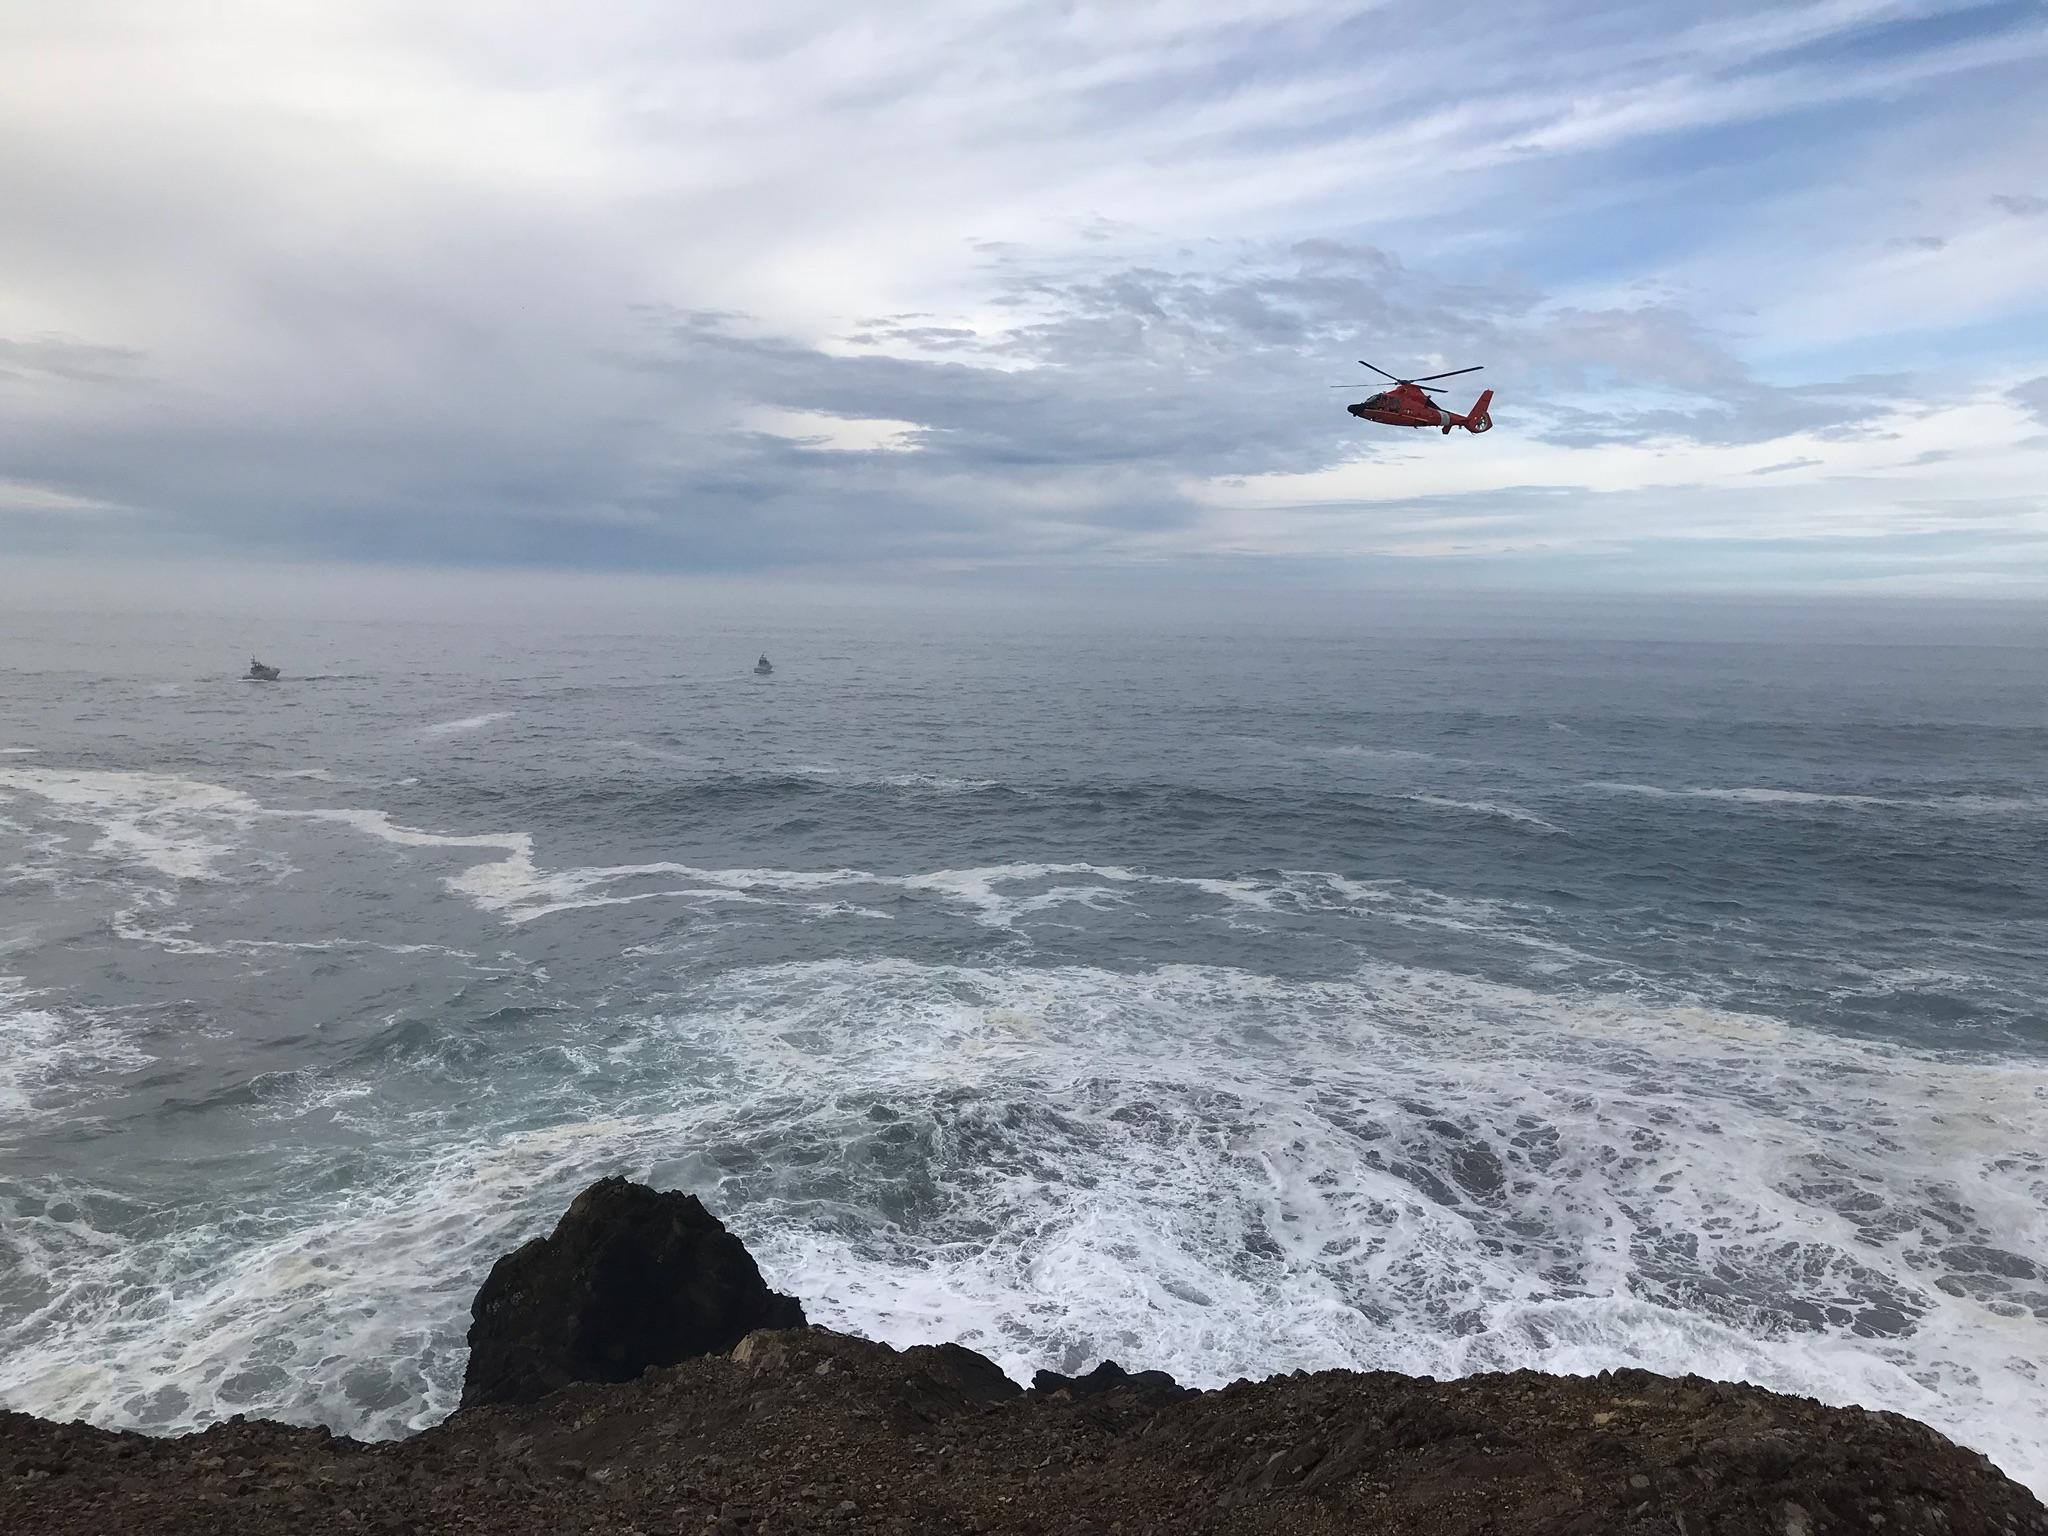 A wave swept a Nevada man out to sea Wednesday morning, Oregon State Police said. State police from Gold Beach responded at 10:35 a.m., along with the U.S. Coast Guard. (OSP)